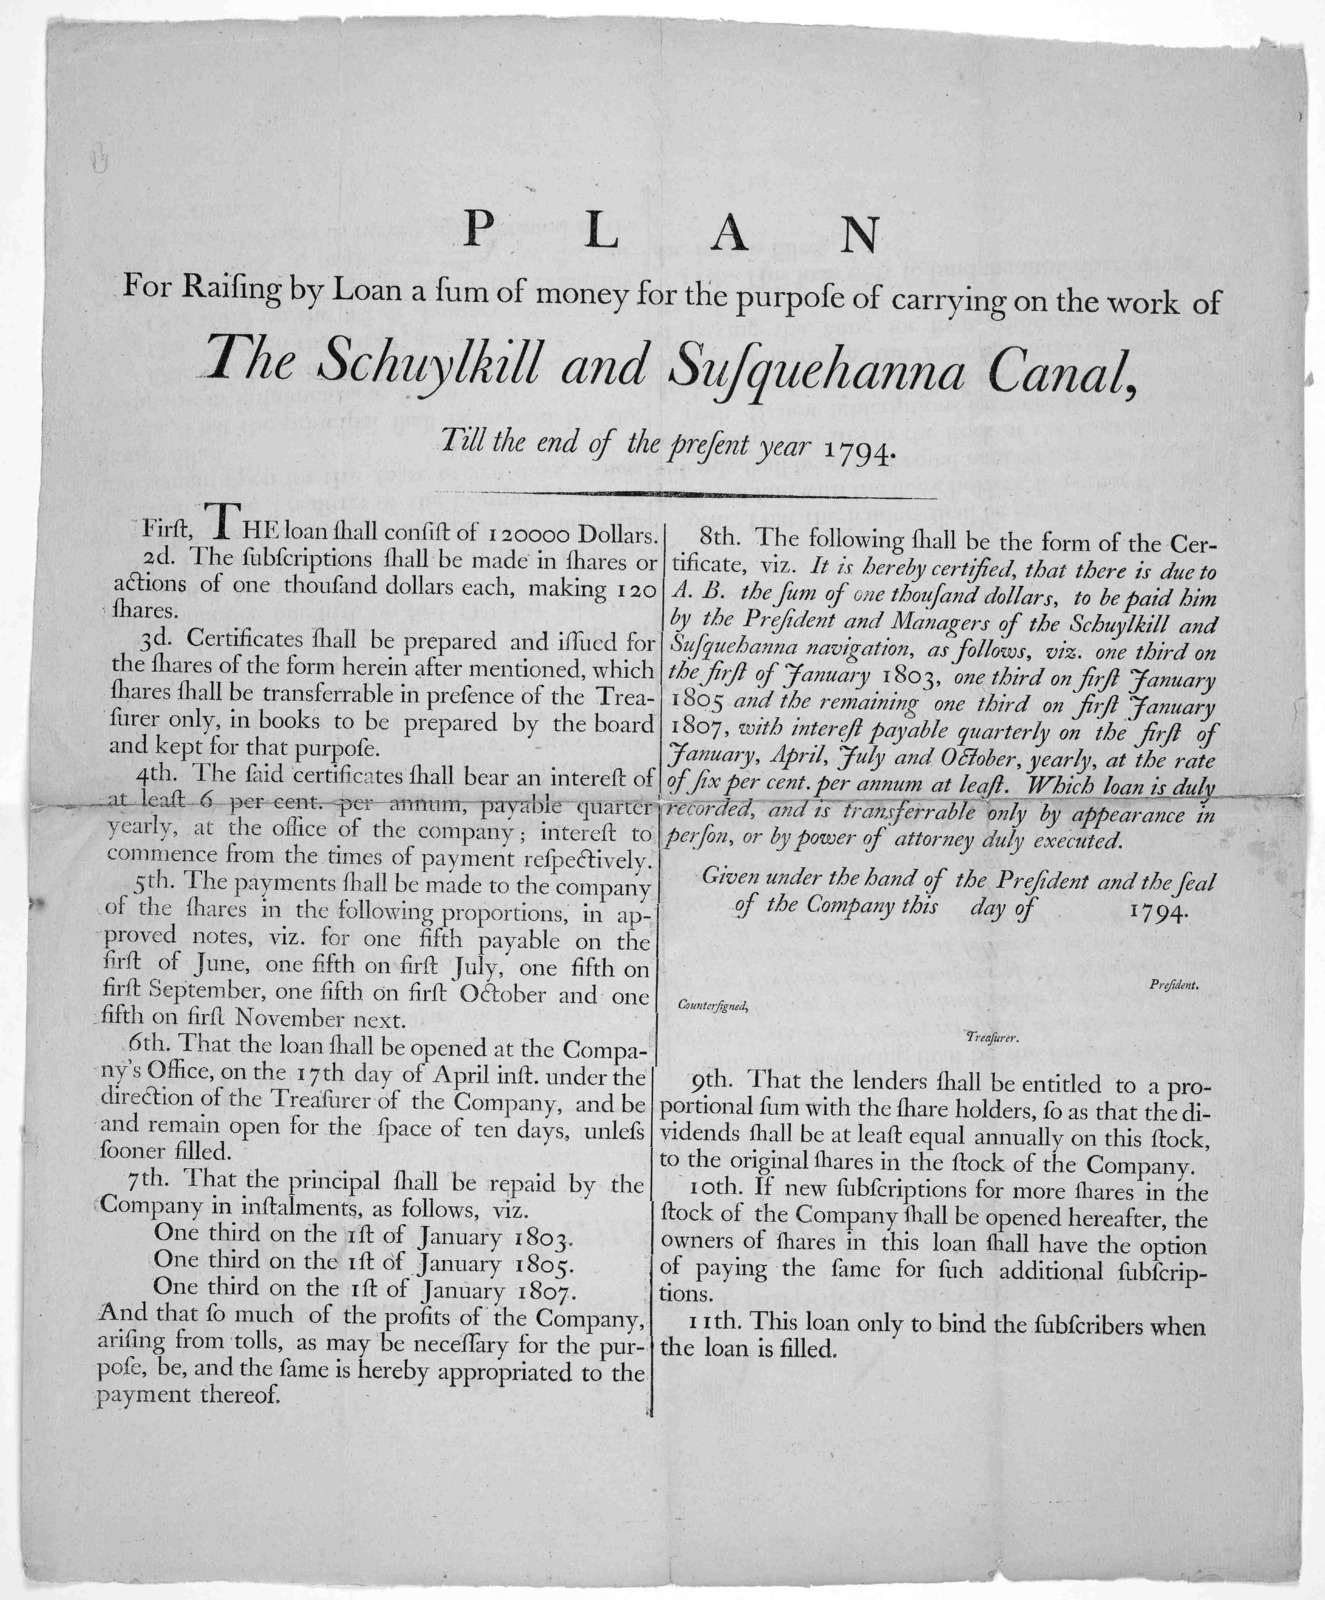 Plan for raising by loan a sum of money for the purpose of carrying on the work of The Schuylkill and Susquehanna Canal till the end of the present year 1794.